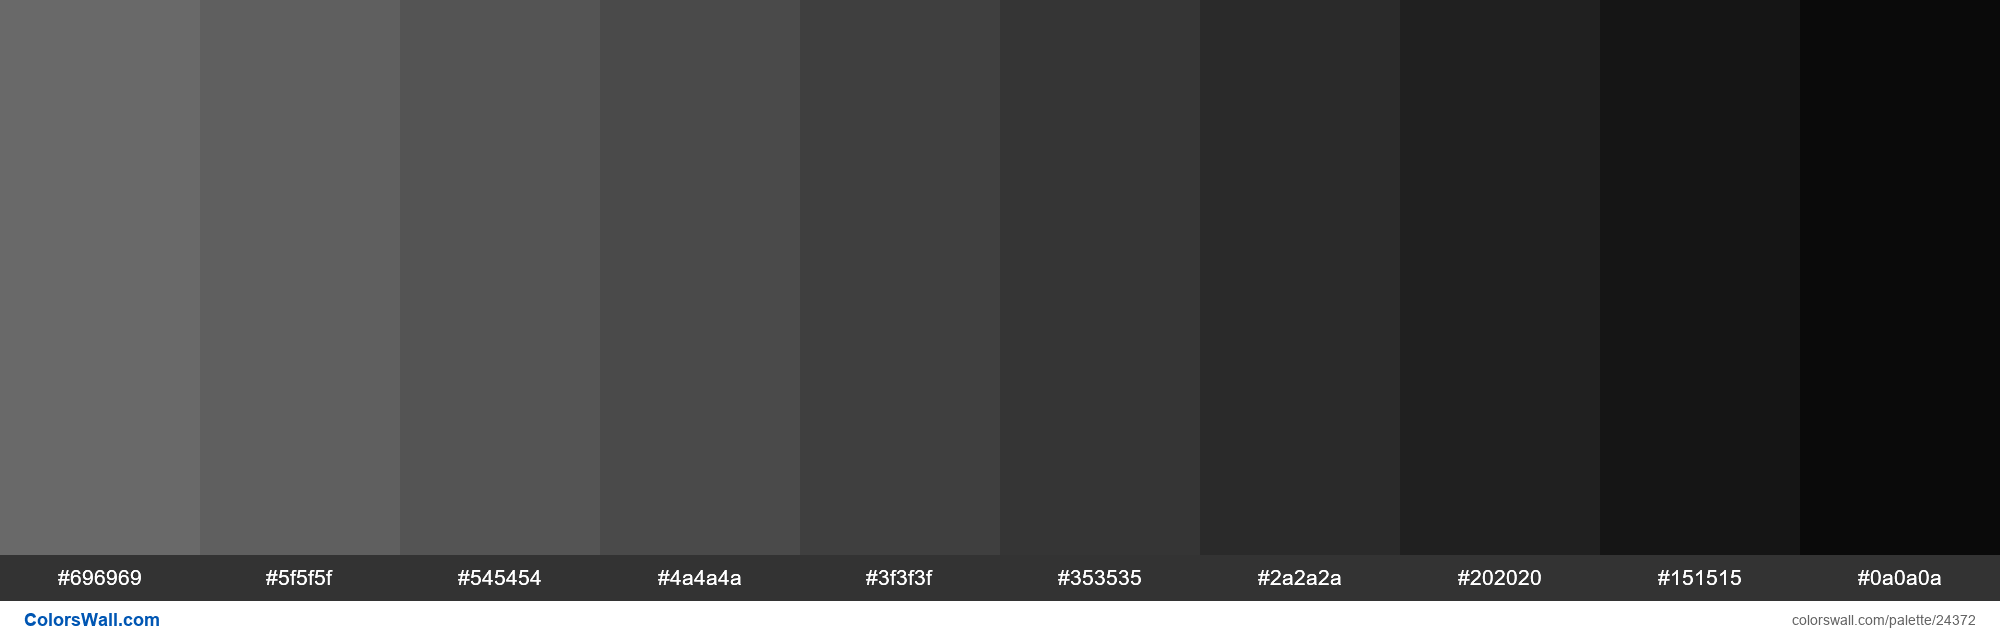 Shades of Dim Gray #696969 hex color - #24372